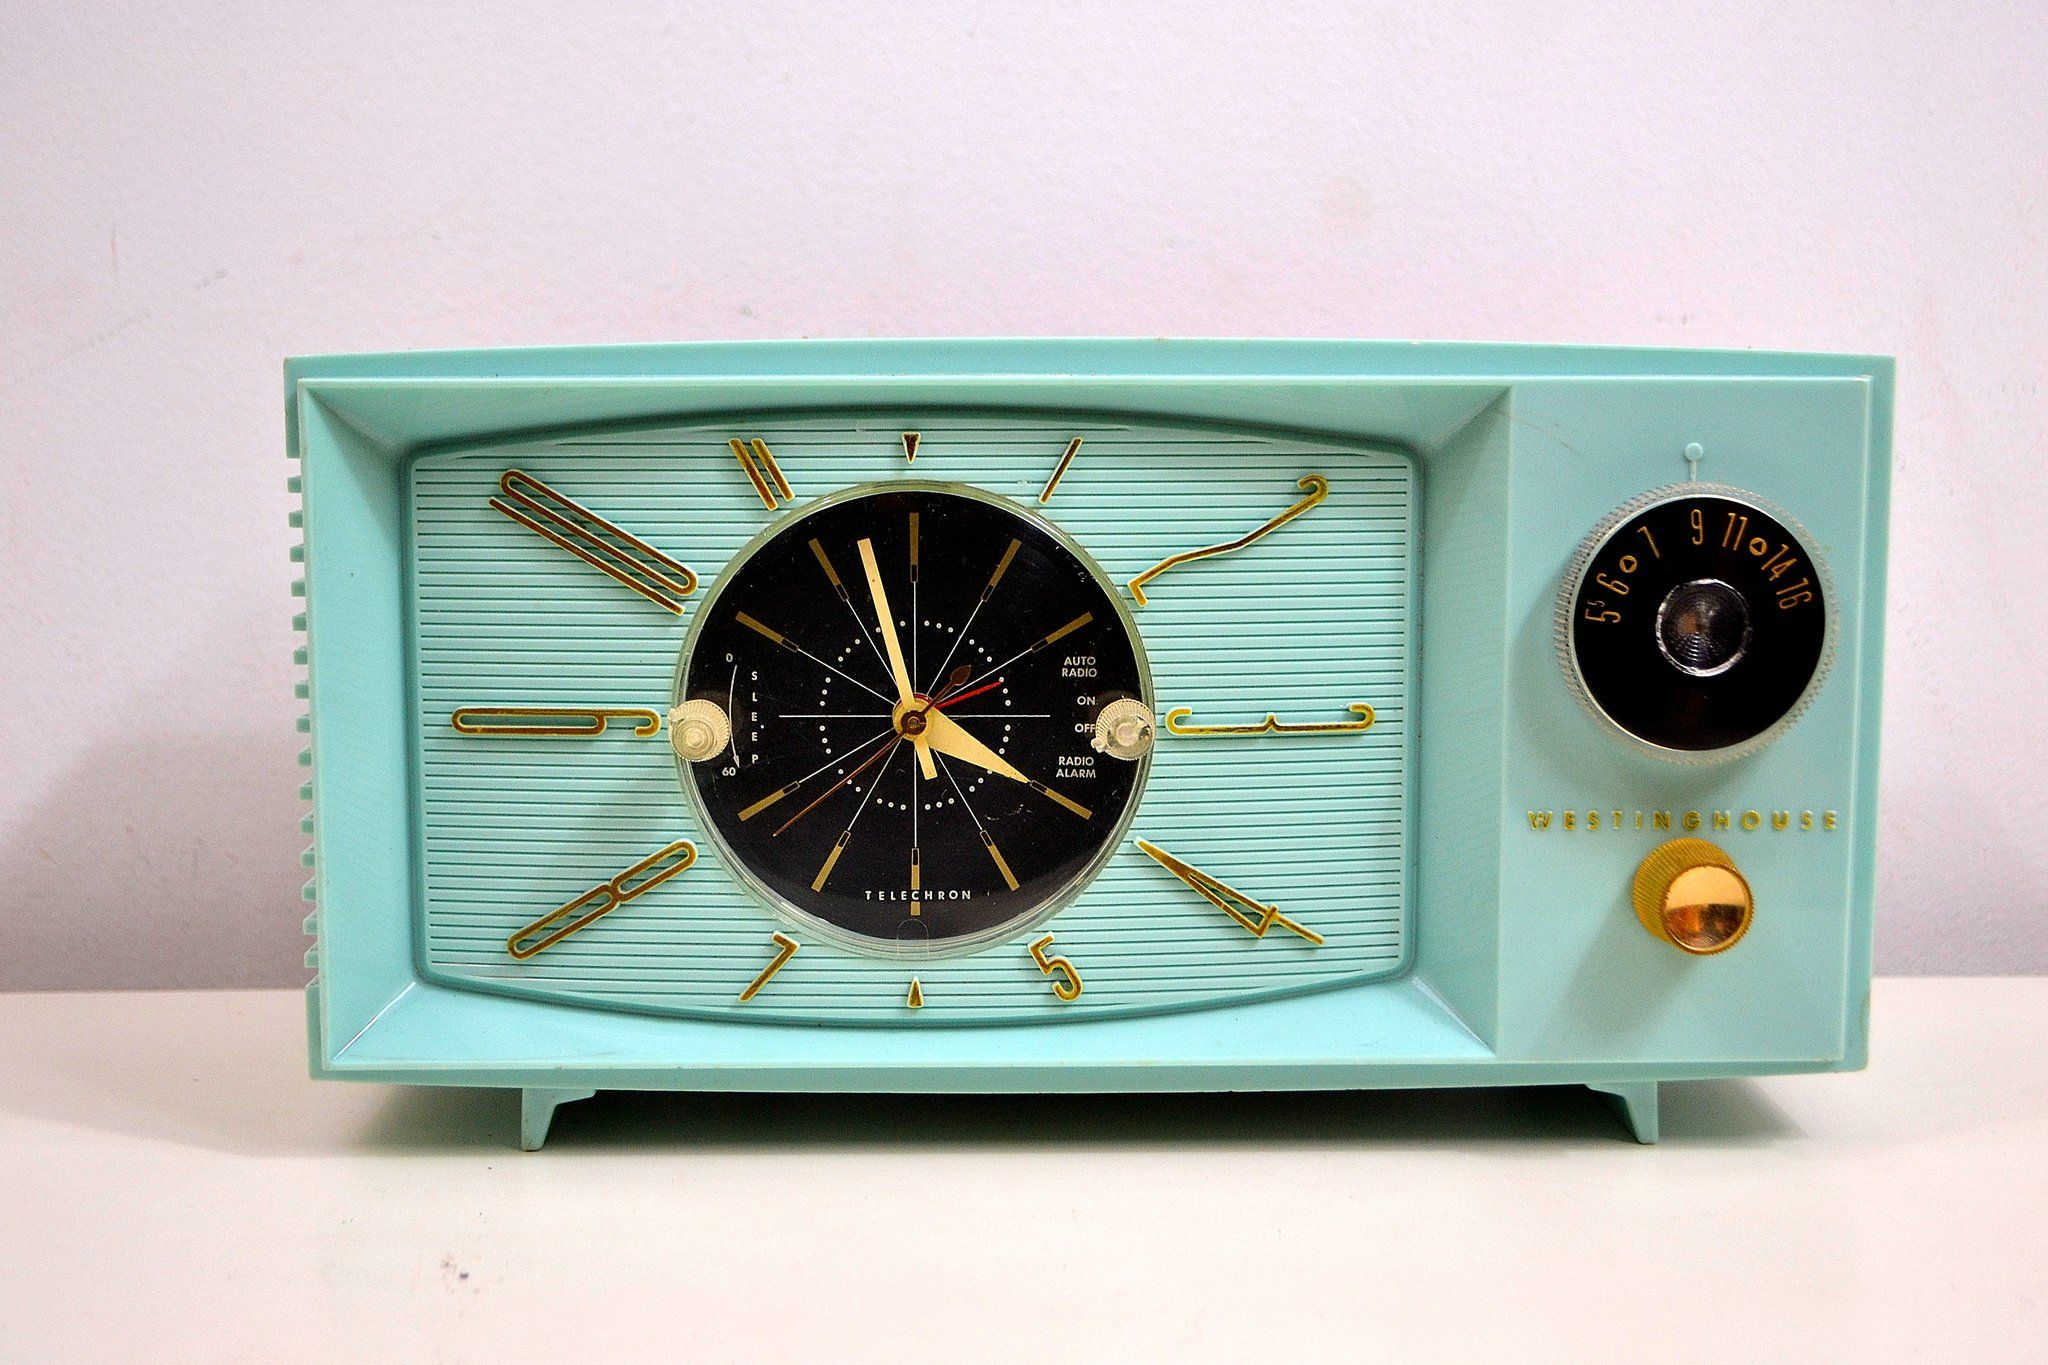 Sold March 1 2020 Light Blue Turquoise 1959 Westinghouse Model 671t5 Vintage Tube Am Clock Radio Gorgeous And Sounds Great In 2020 Retro Radios Clock Vintage Radio